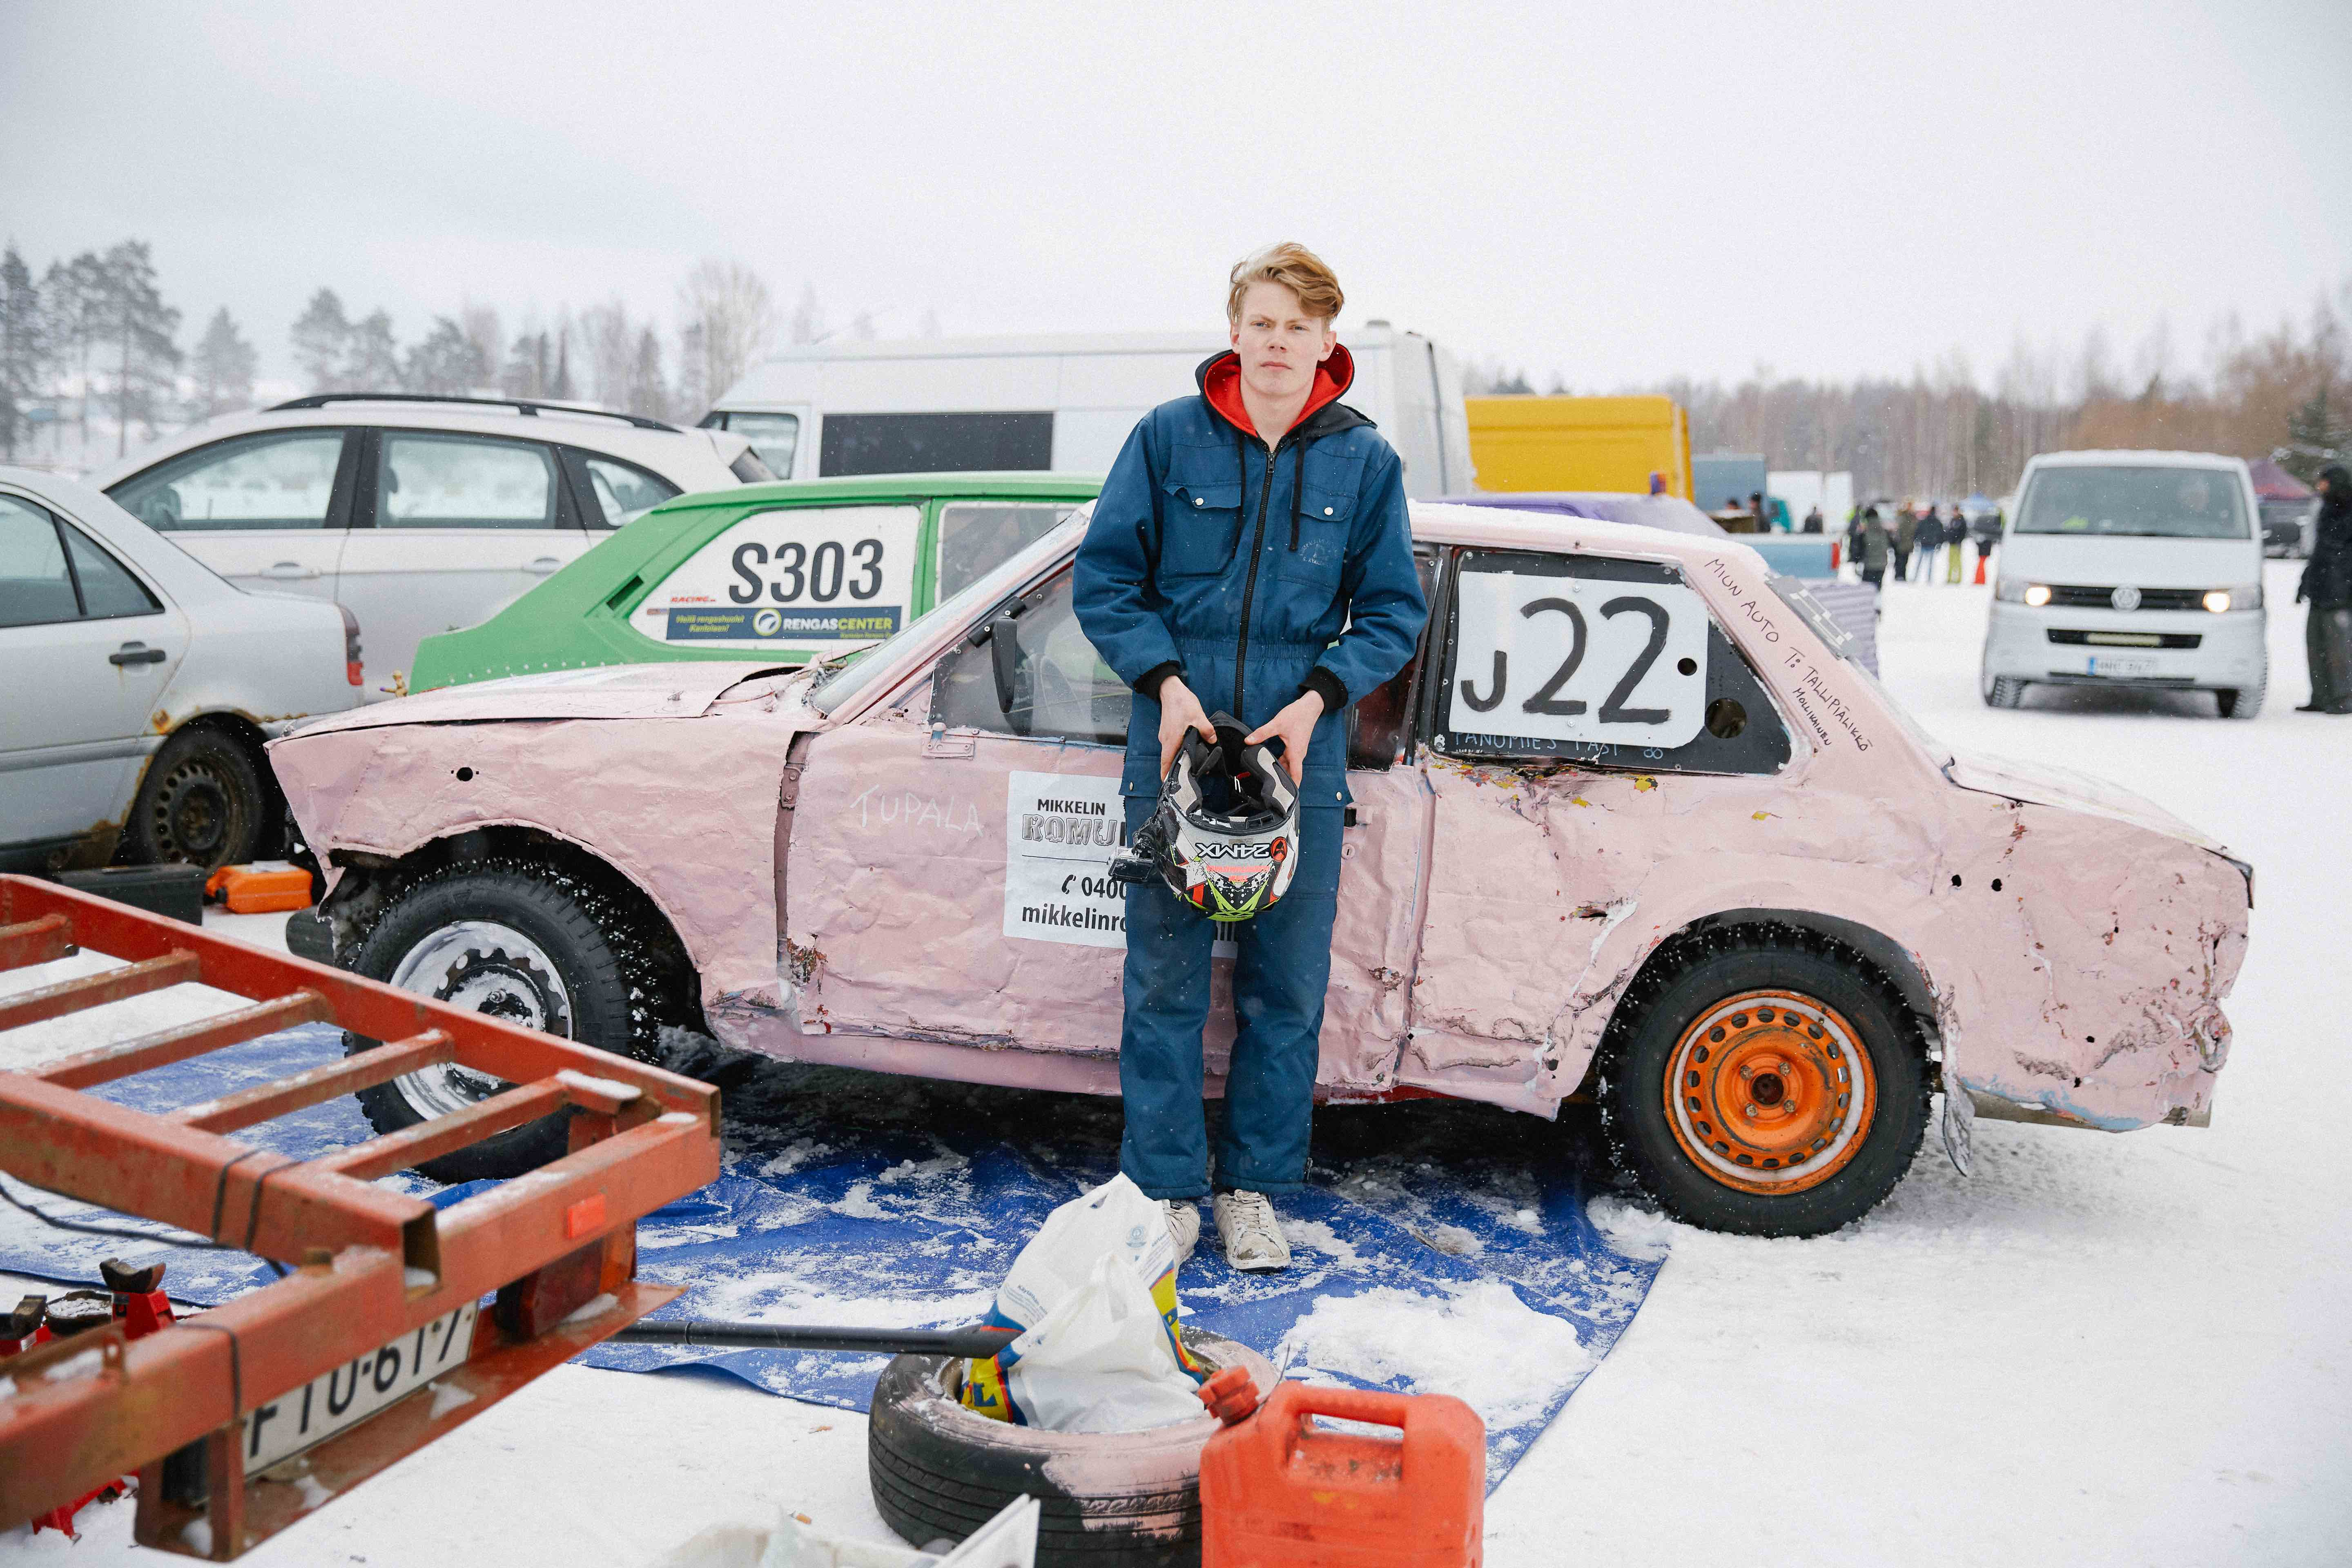 Having been unable to fix his car in time, Eetu borrows another car – affectionately known as 'the pink monster' – before a race.